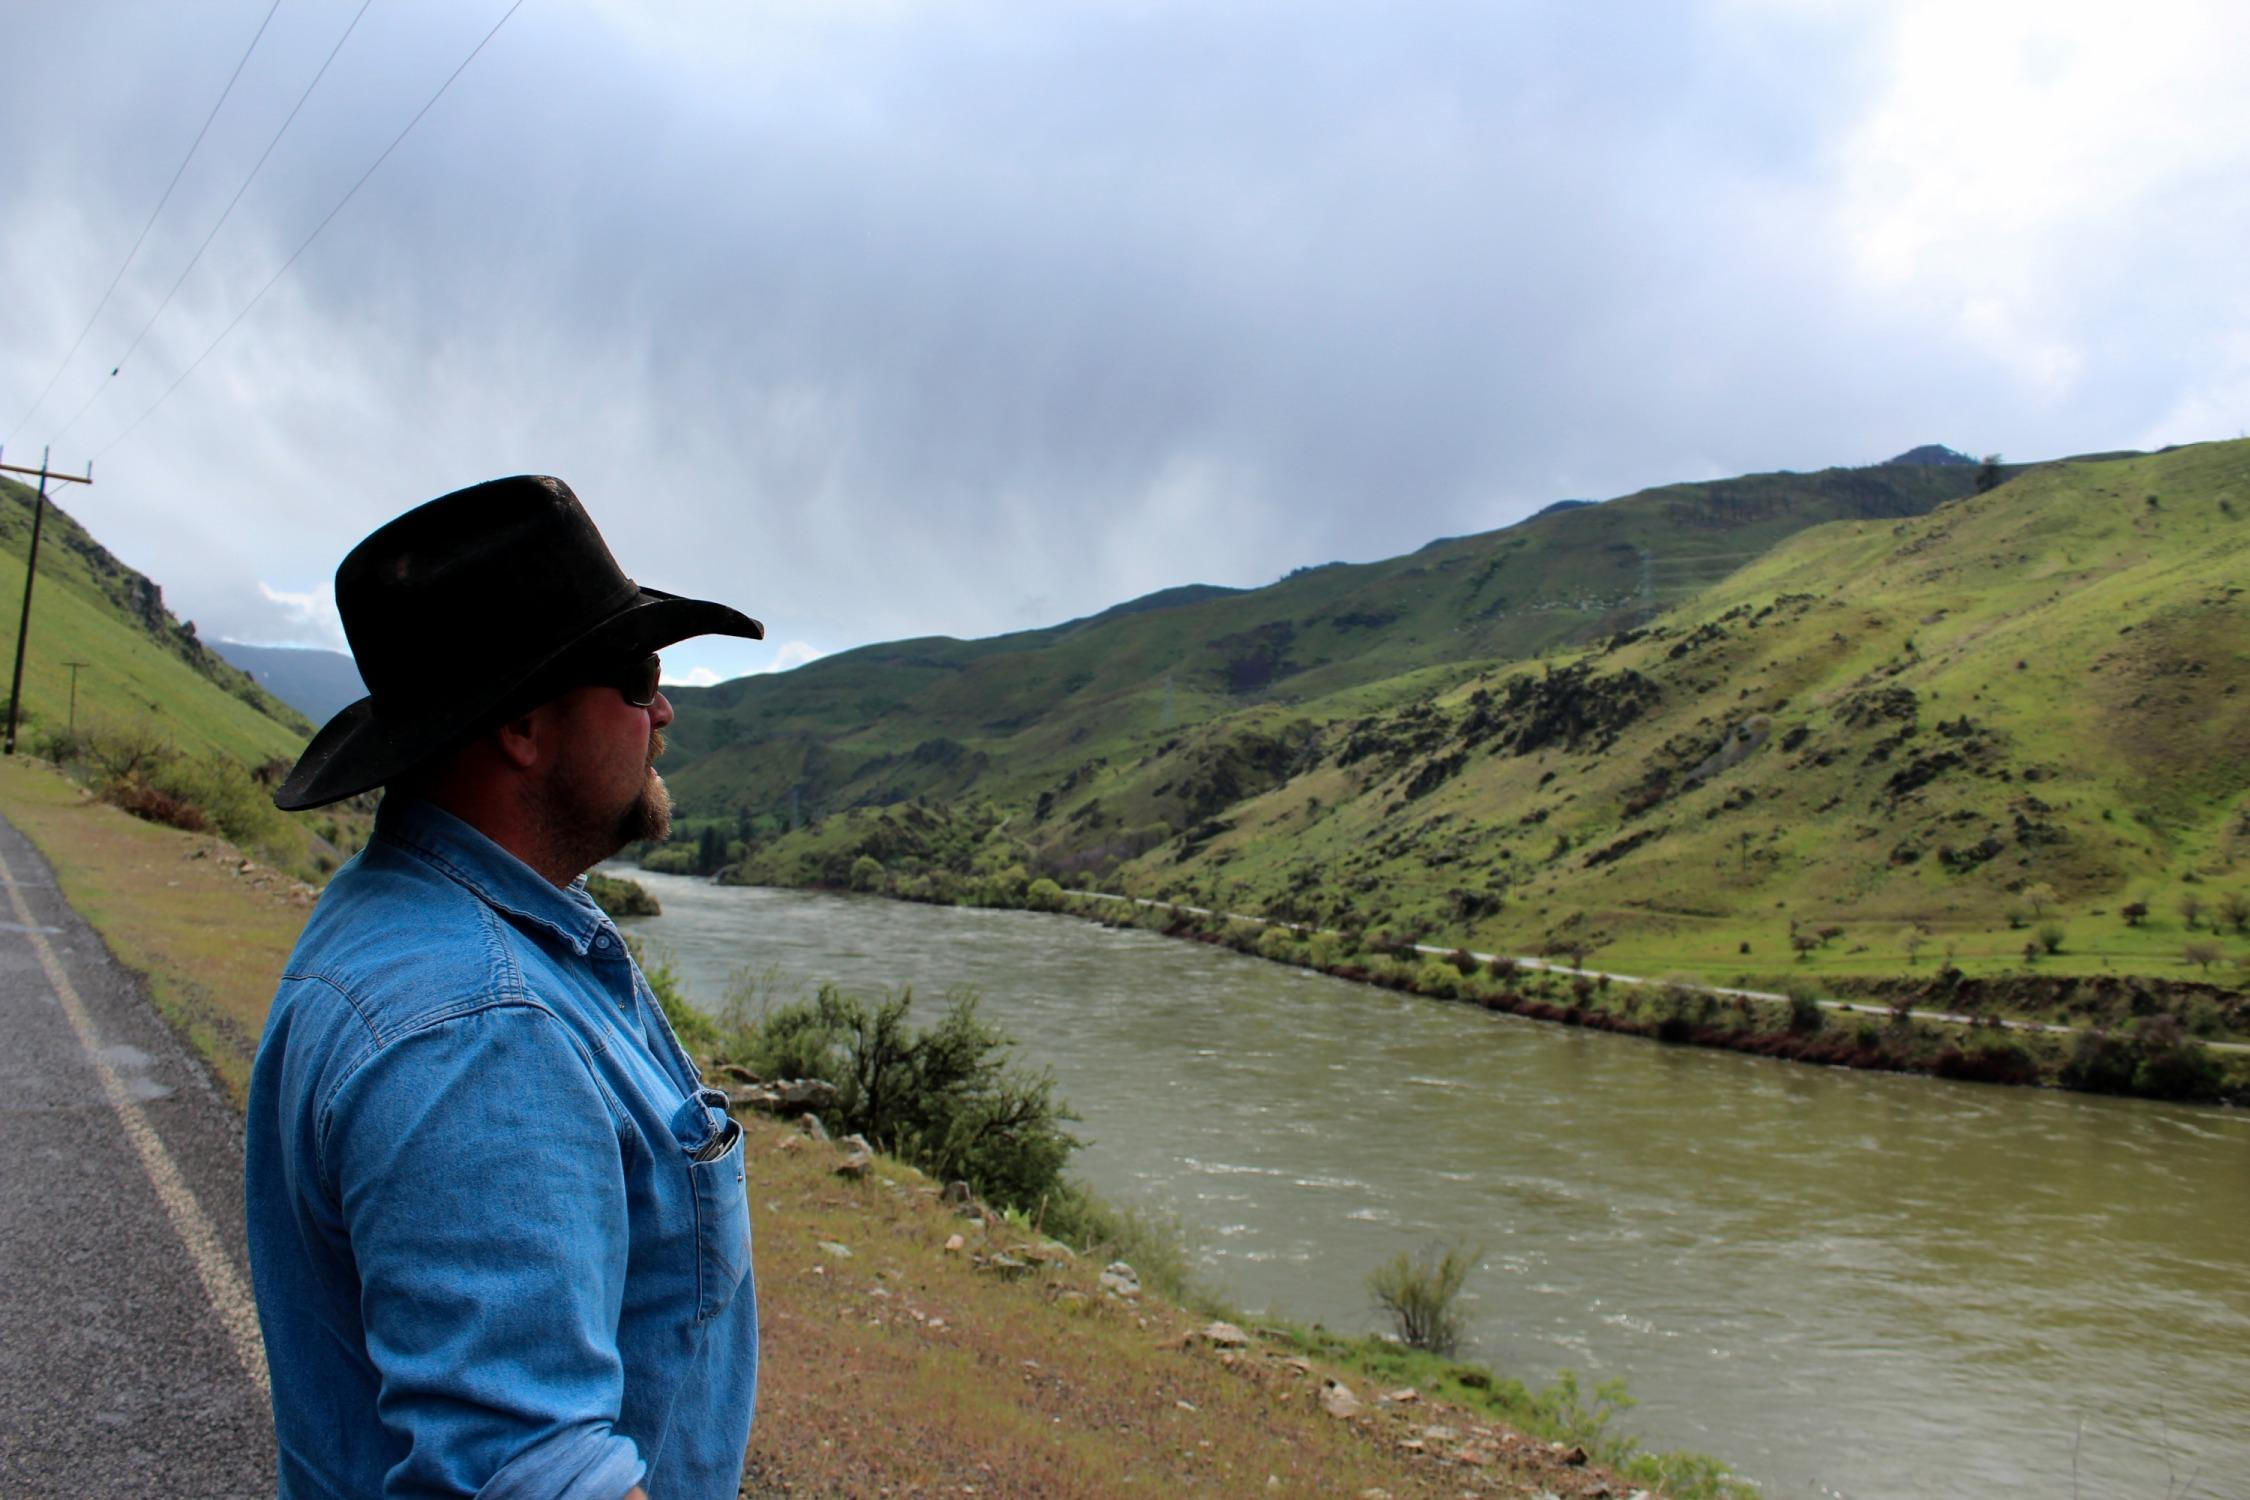 Rancher Chad DelCurto stands at the banks of the Snake River, surveying the stretch of public land where his cattle graze. DelCurto said he lost 41 calves and 11 cows last year, and he blames wolves.